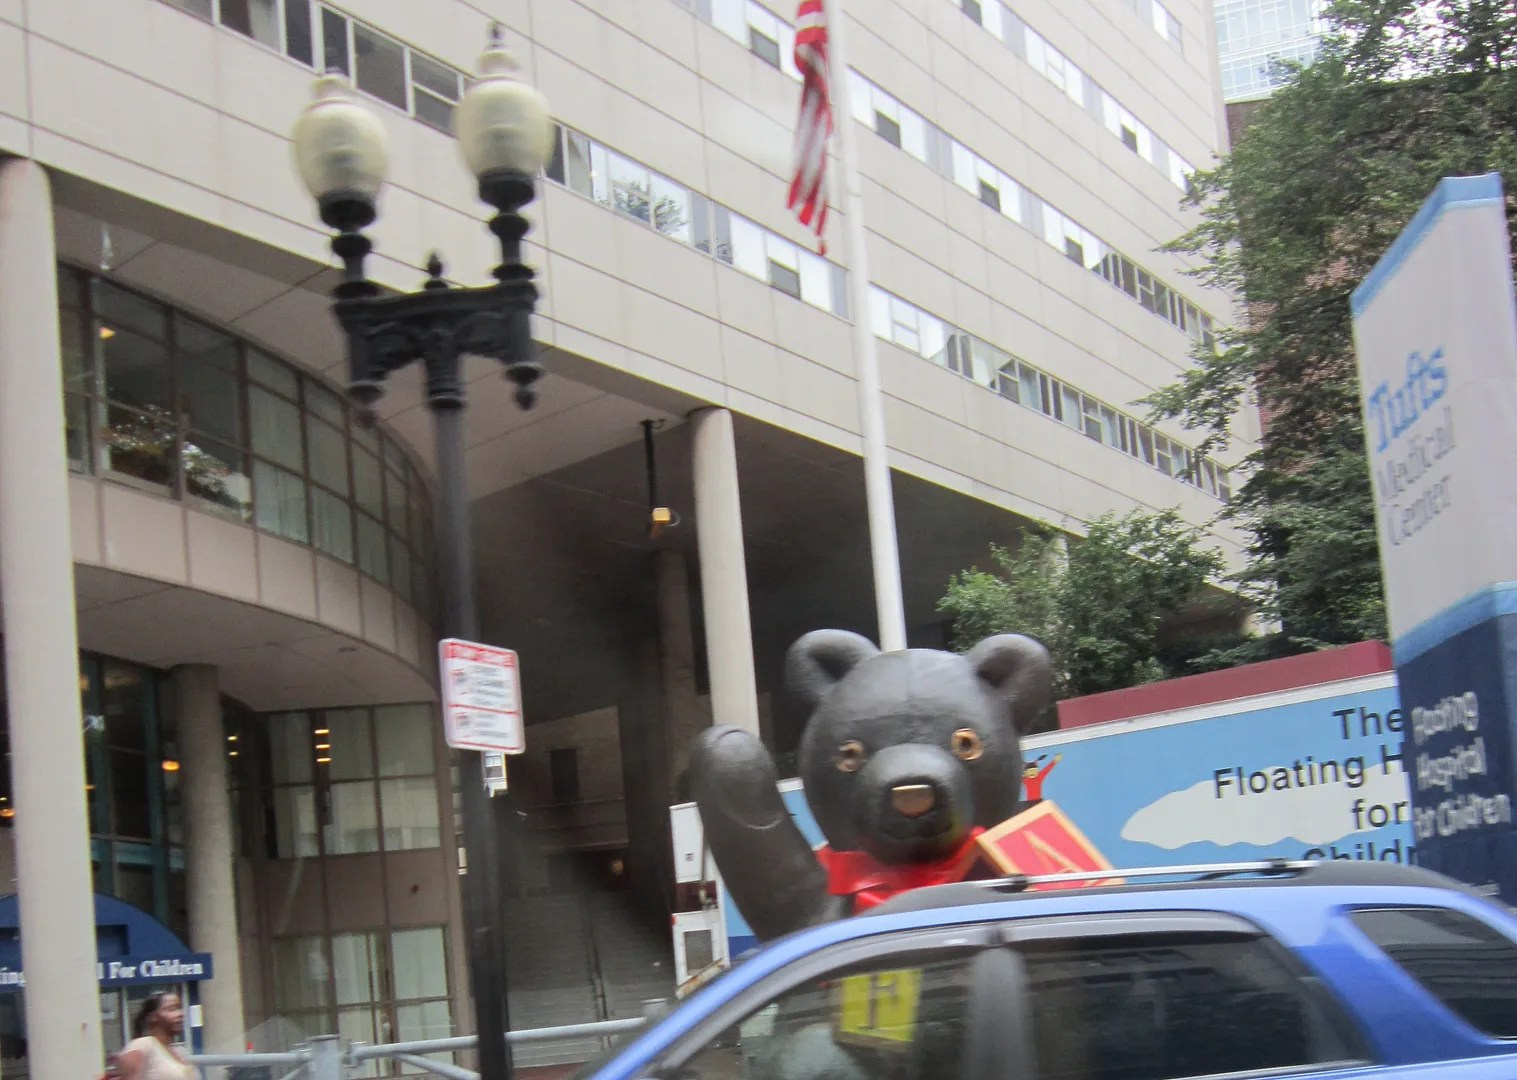 giant teddy bear, Tufts Medical Center, Boston